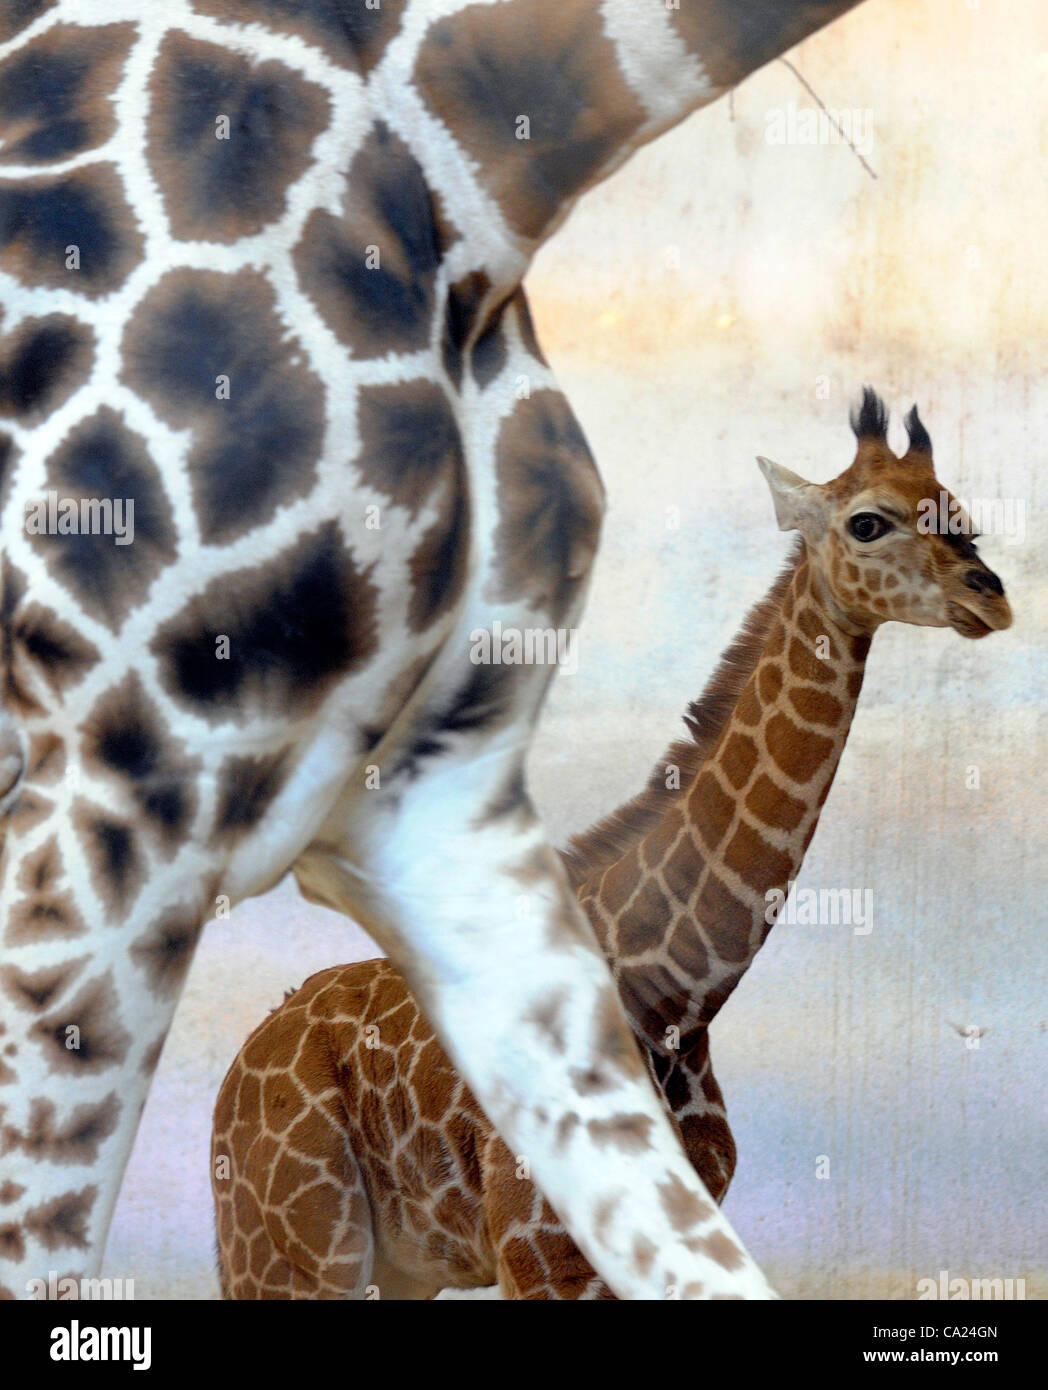 Giraffe Nora, left, and its calf Soya named after a Japanese schoolgirl in Prague Zoo on Friday, March 23, 2012. - Stock Image